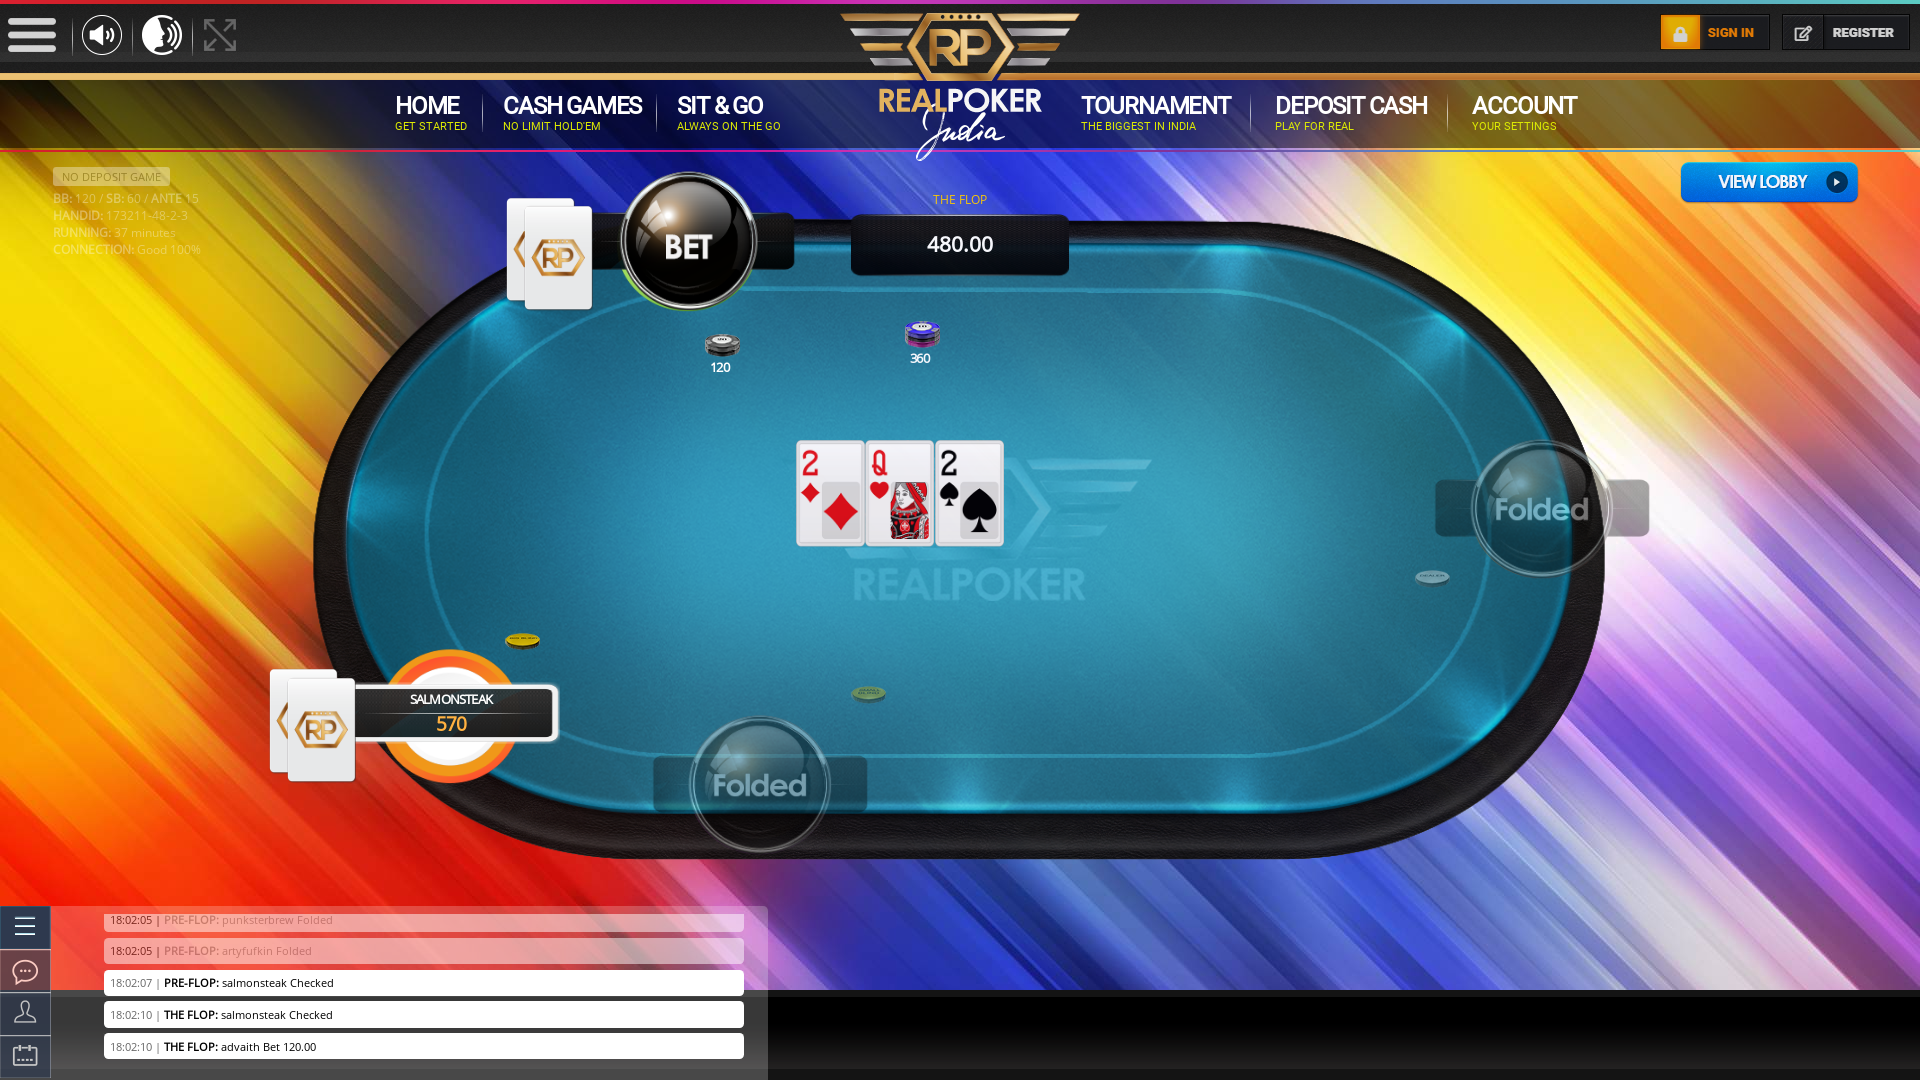 Real poker 10 player table in the 37th minute